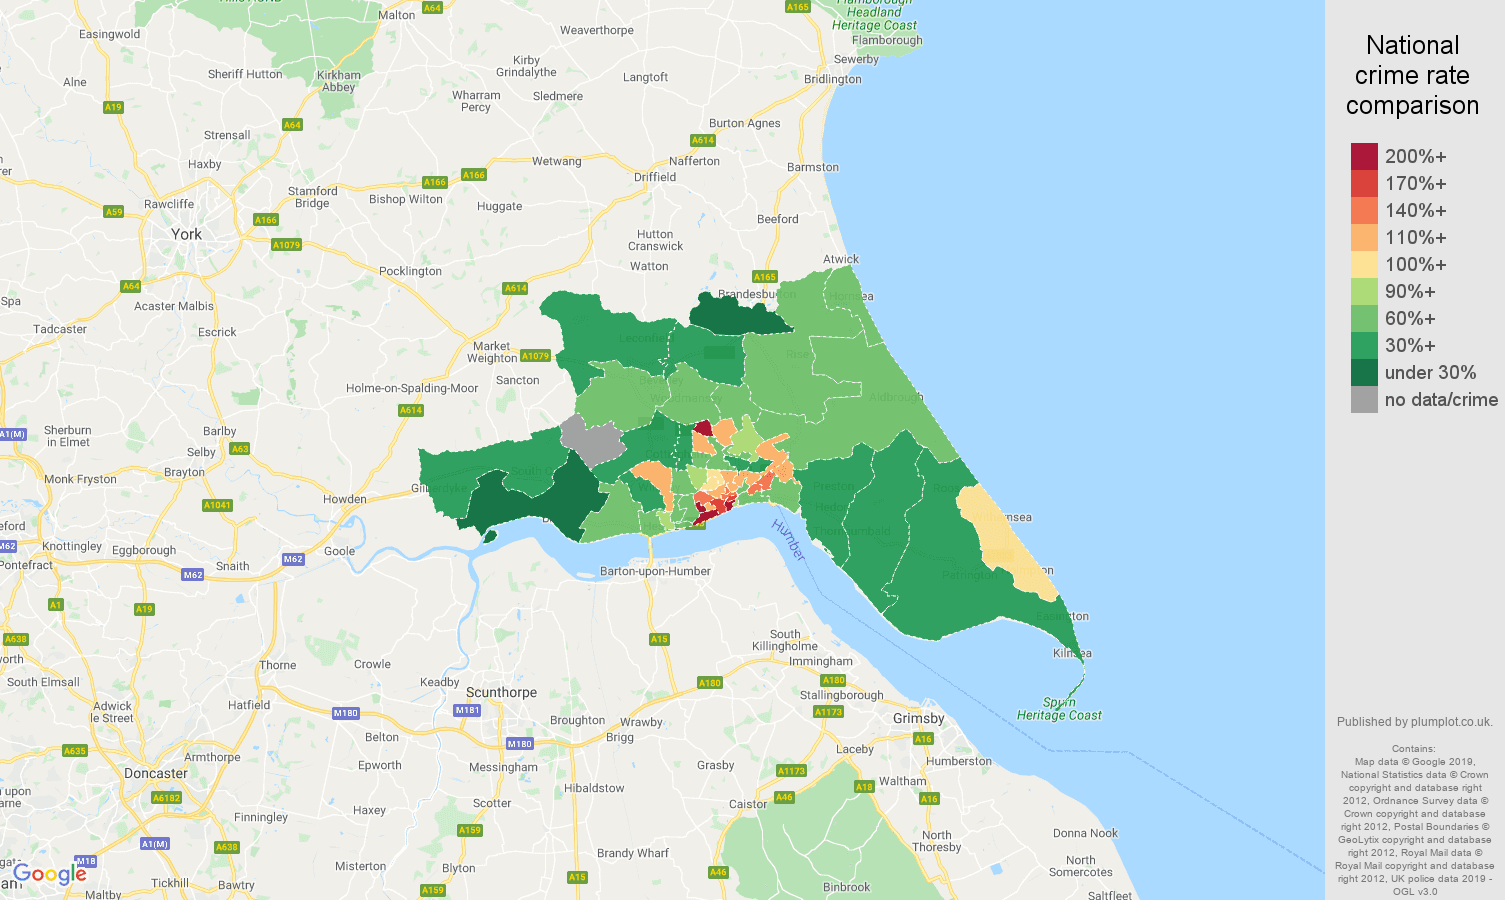 Hull other theft crime rate comparison map